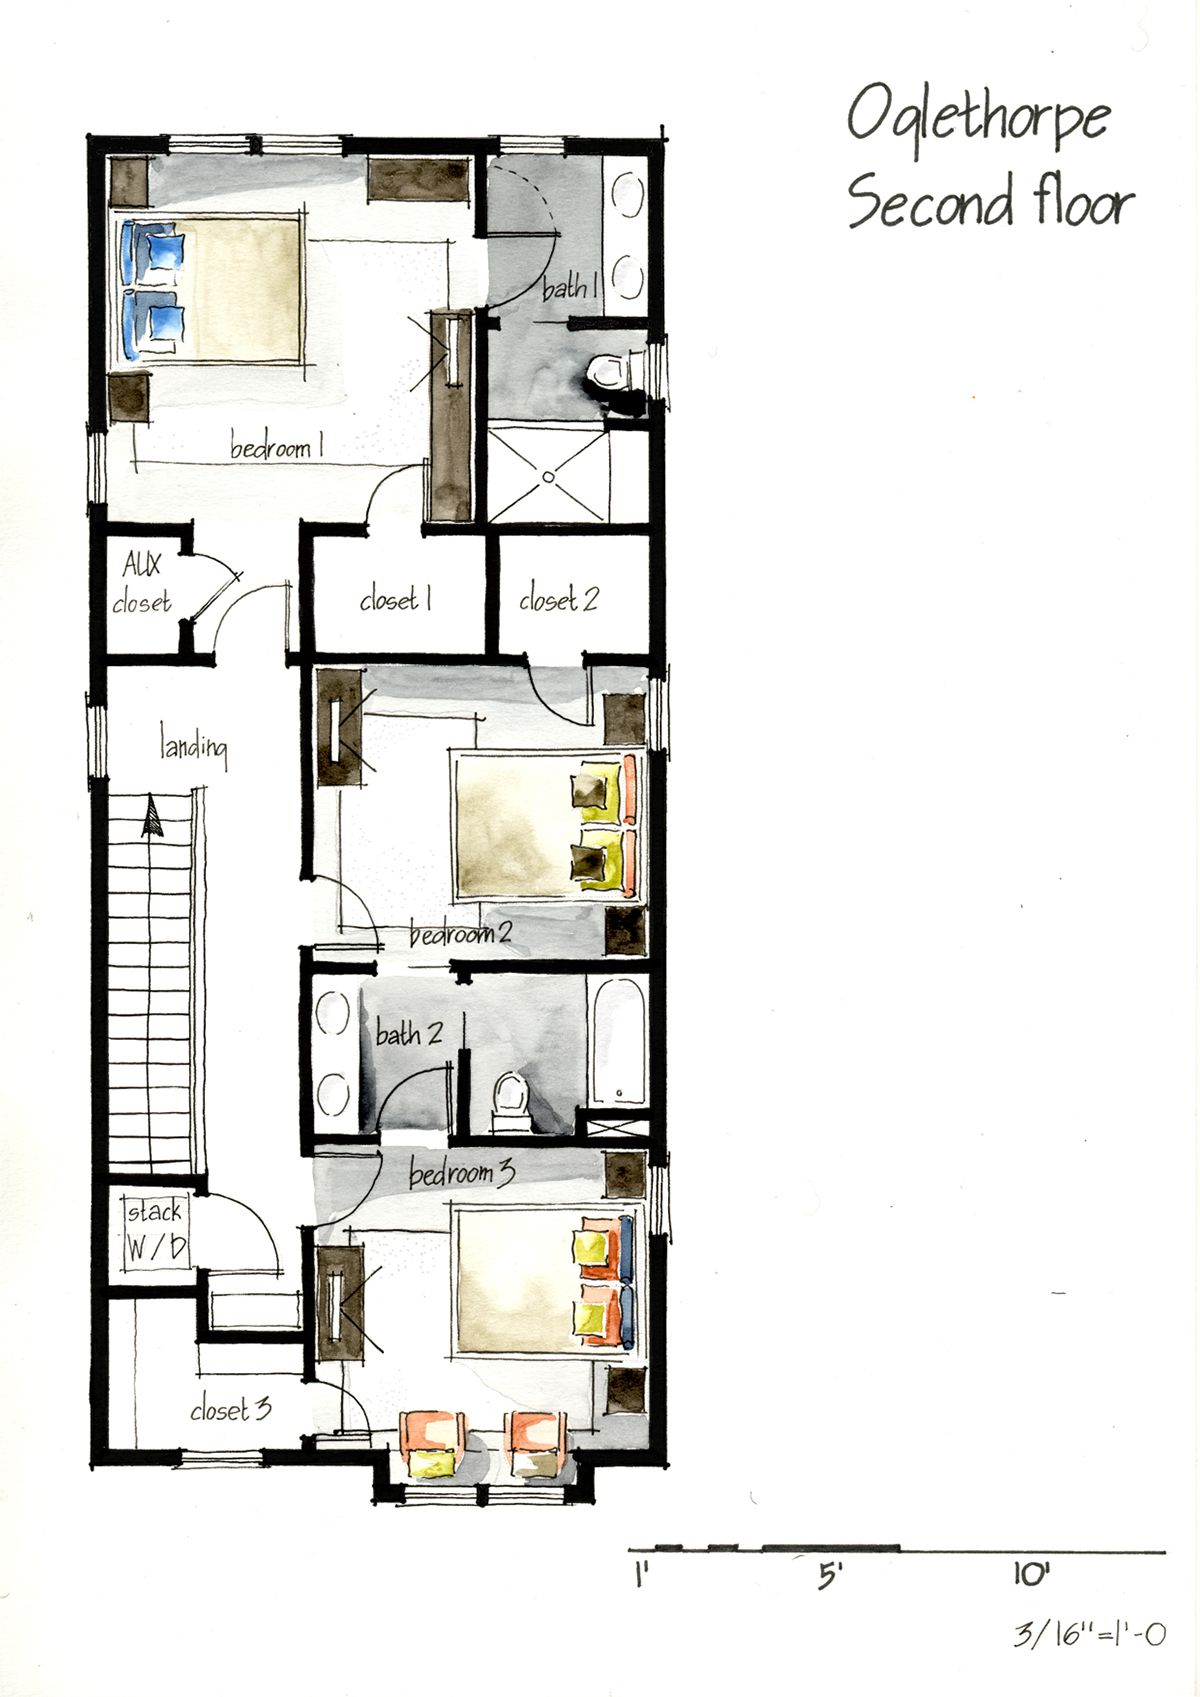 Inside House Drawing: Real Estate Watercolor 2D Floor Plans Part 1 On Behance